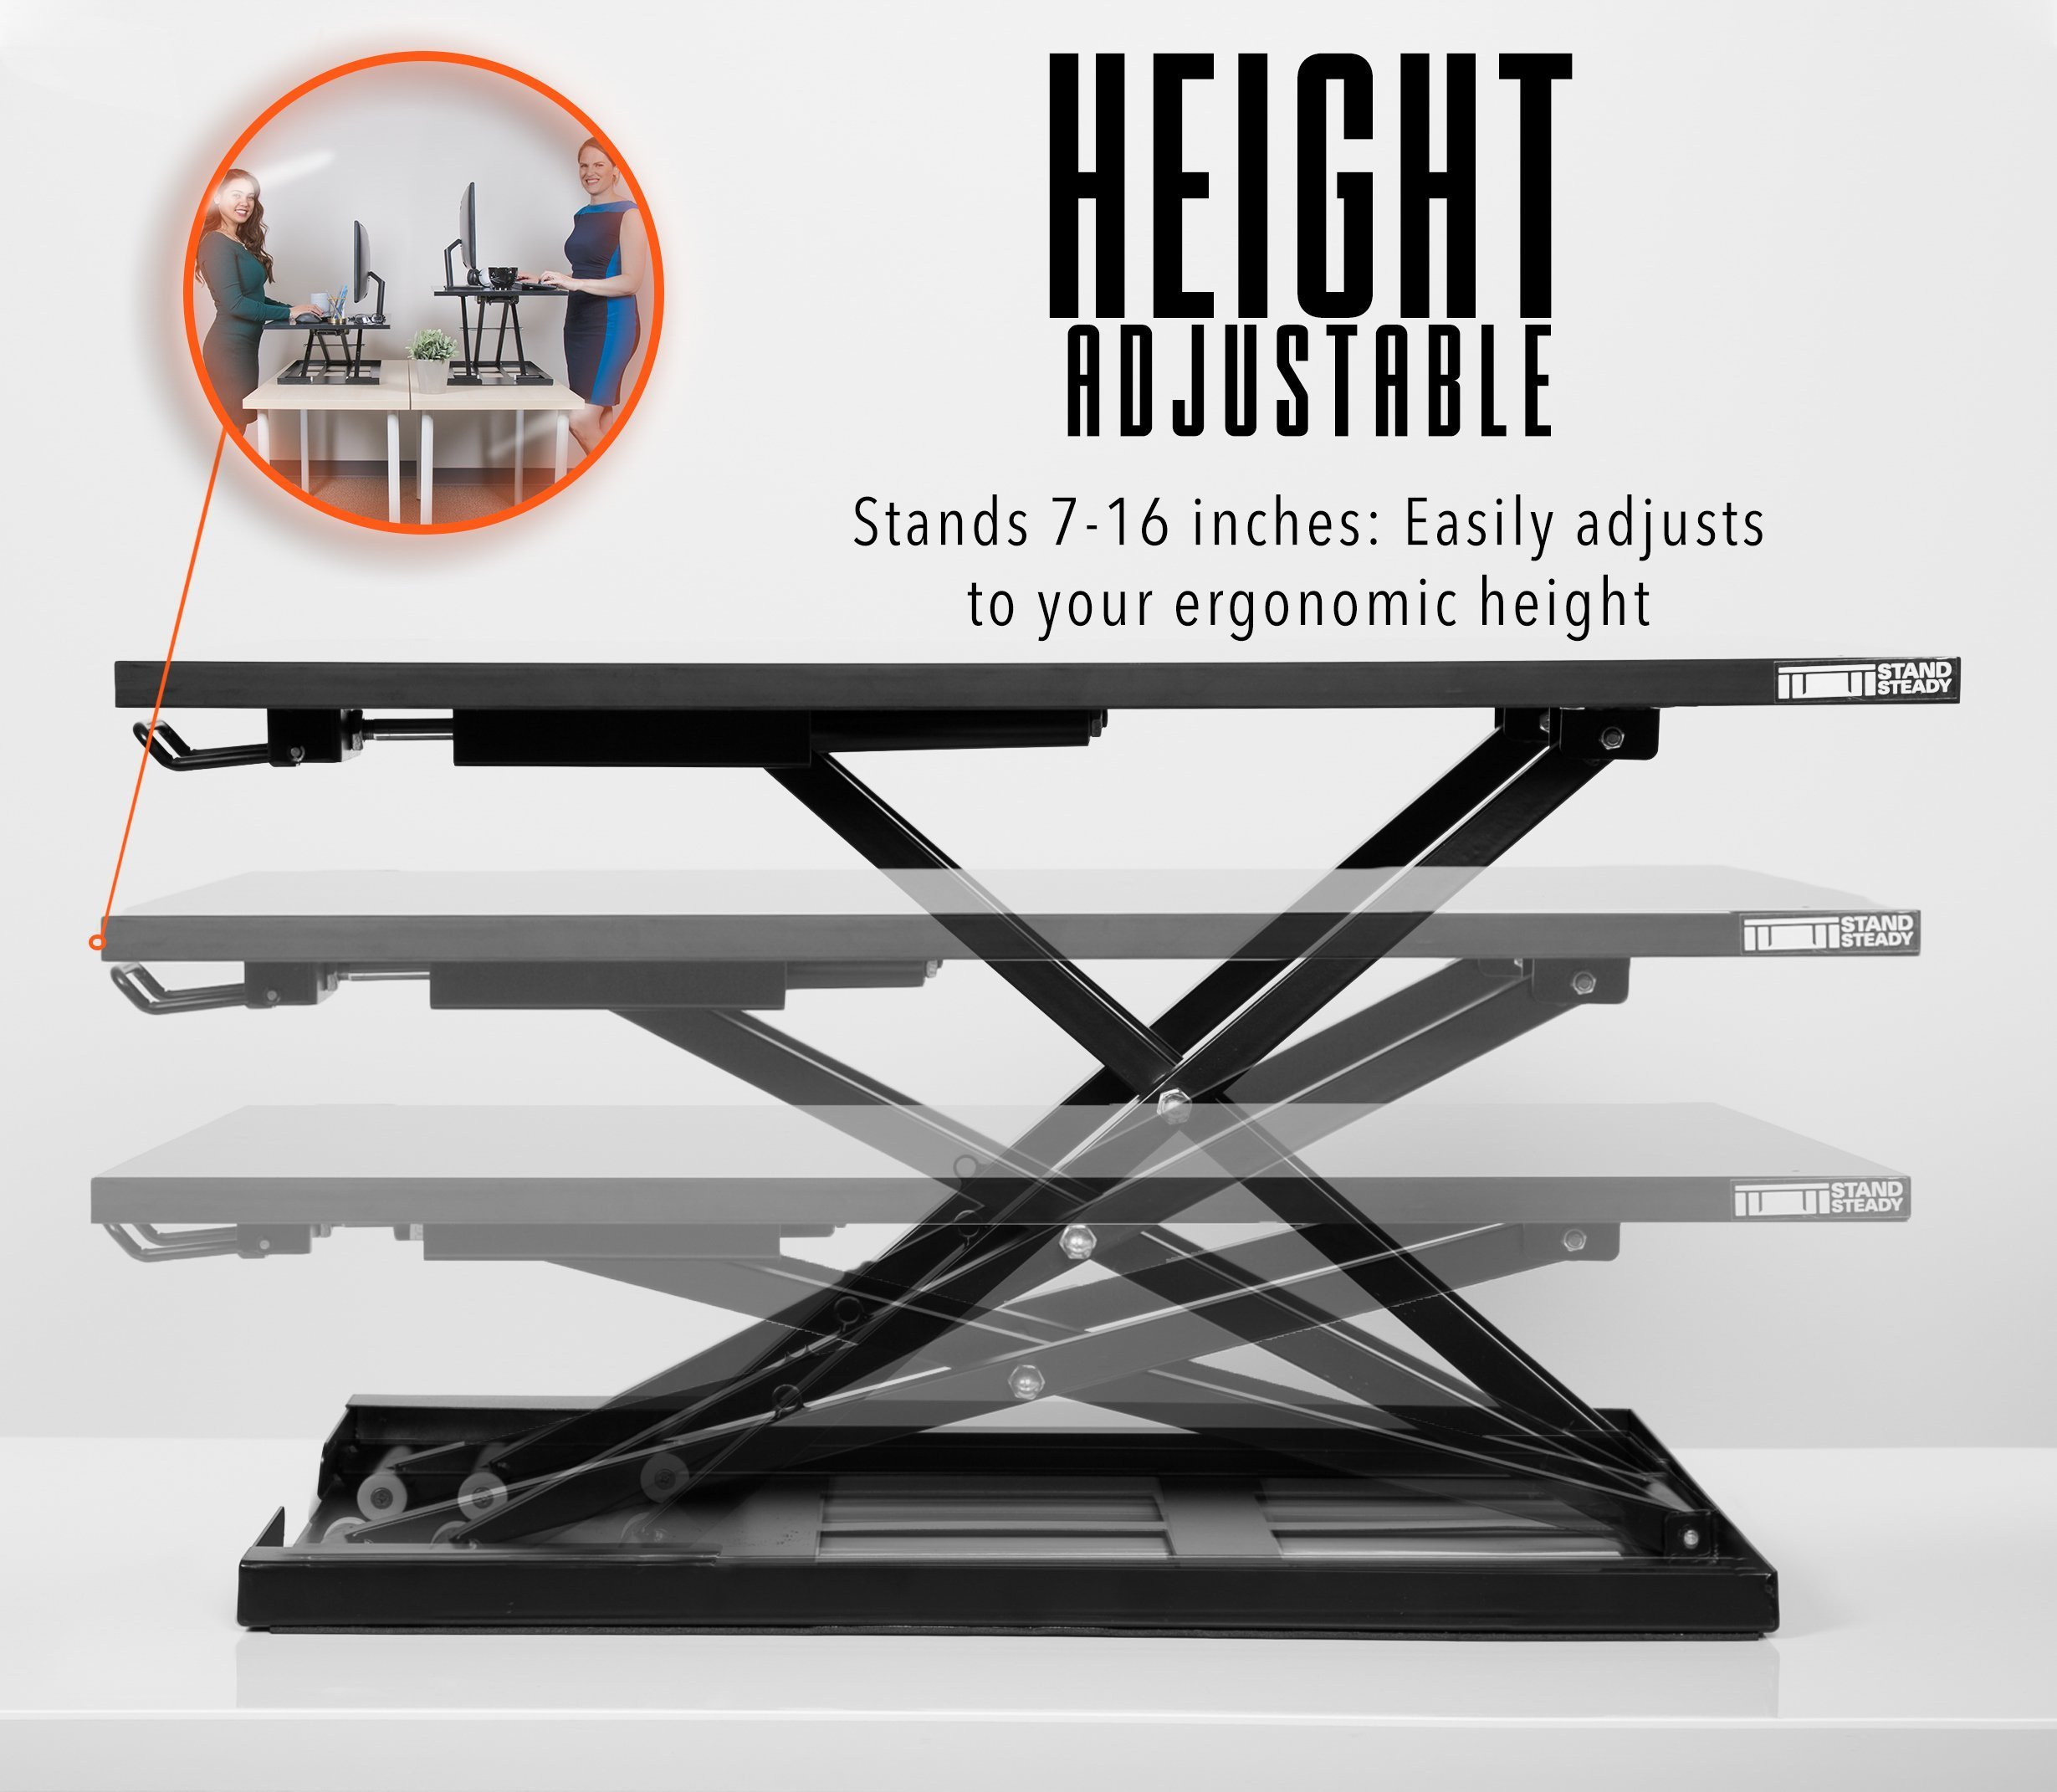 Standing Desk - X-Elite Pro Height Adjustable Desk Converter - Size 28in x 20in Instantly Convert any Desk to a Sit / Stand up Desk (Black) by Stand Steady (Image #7)